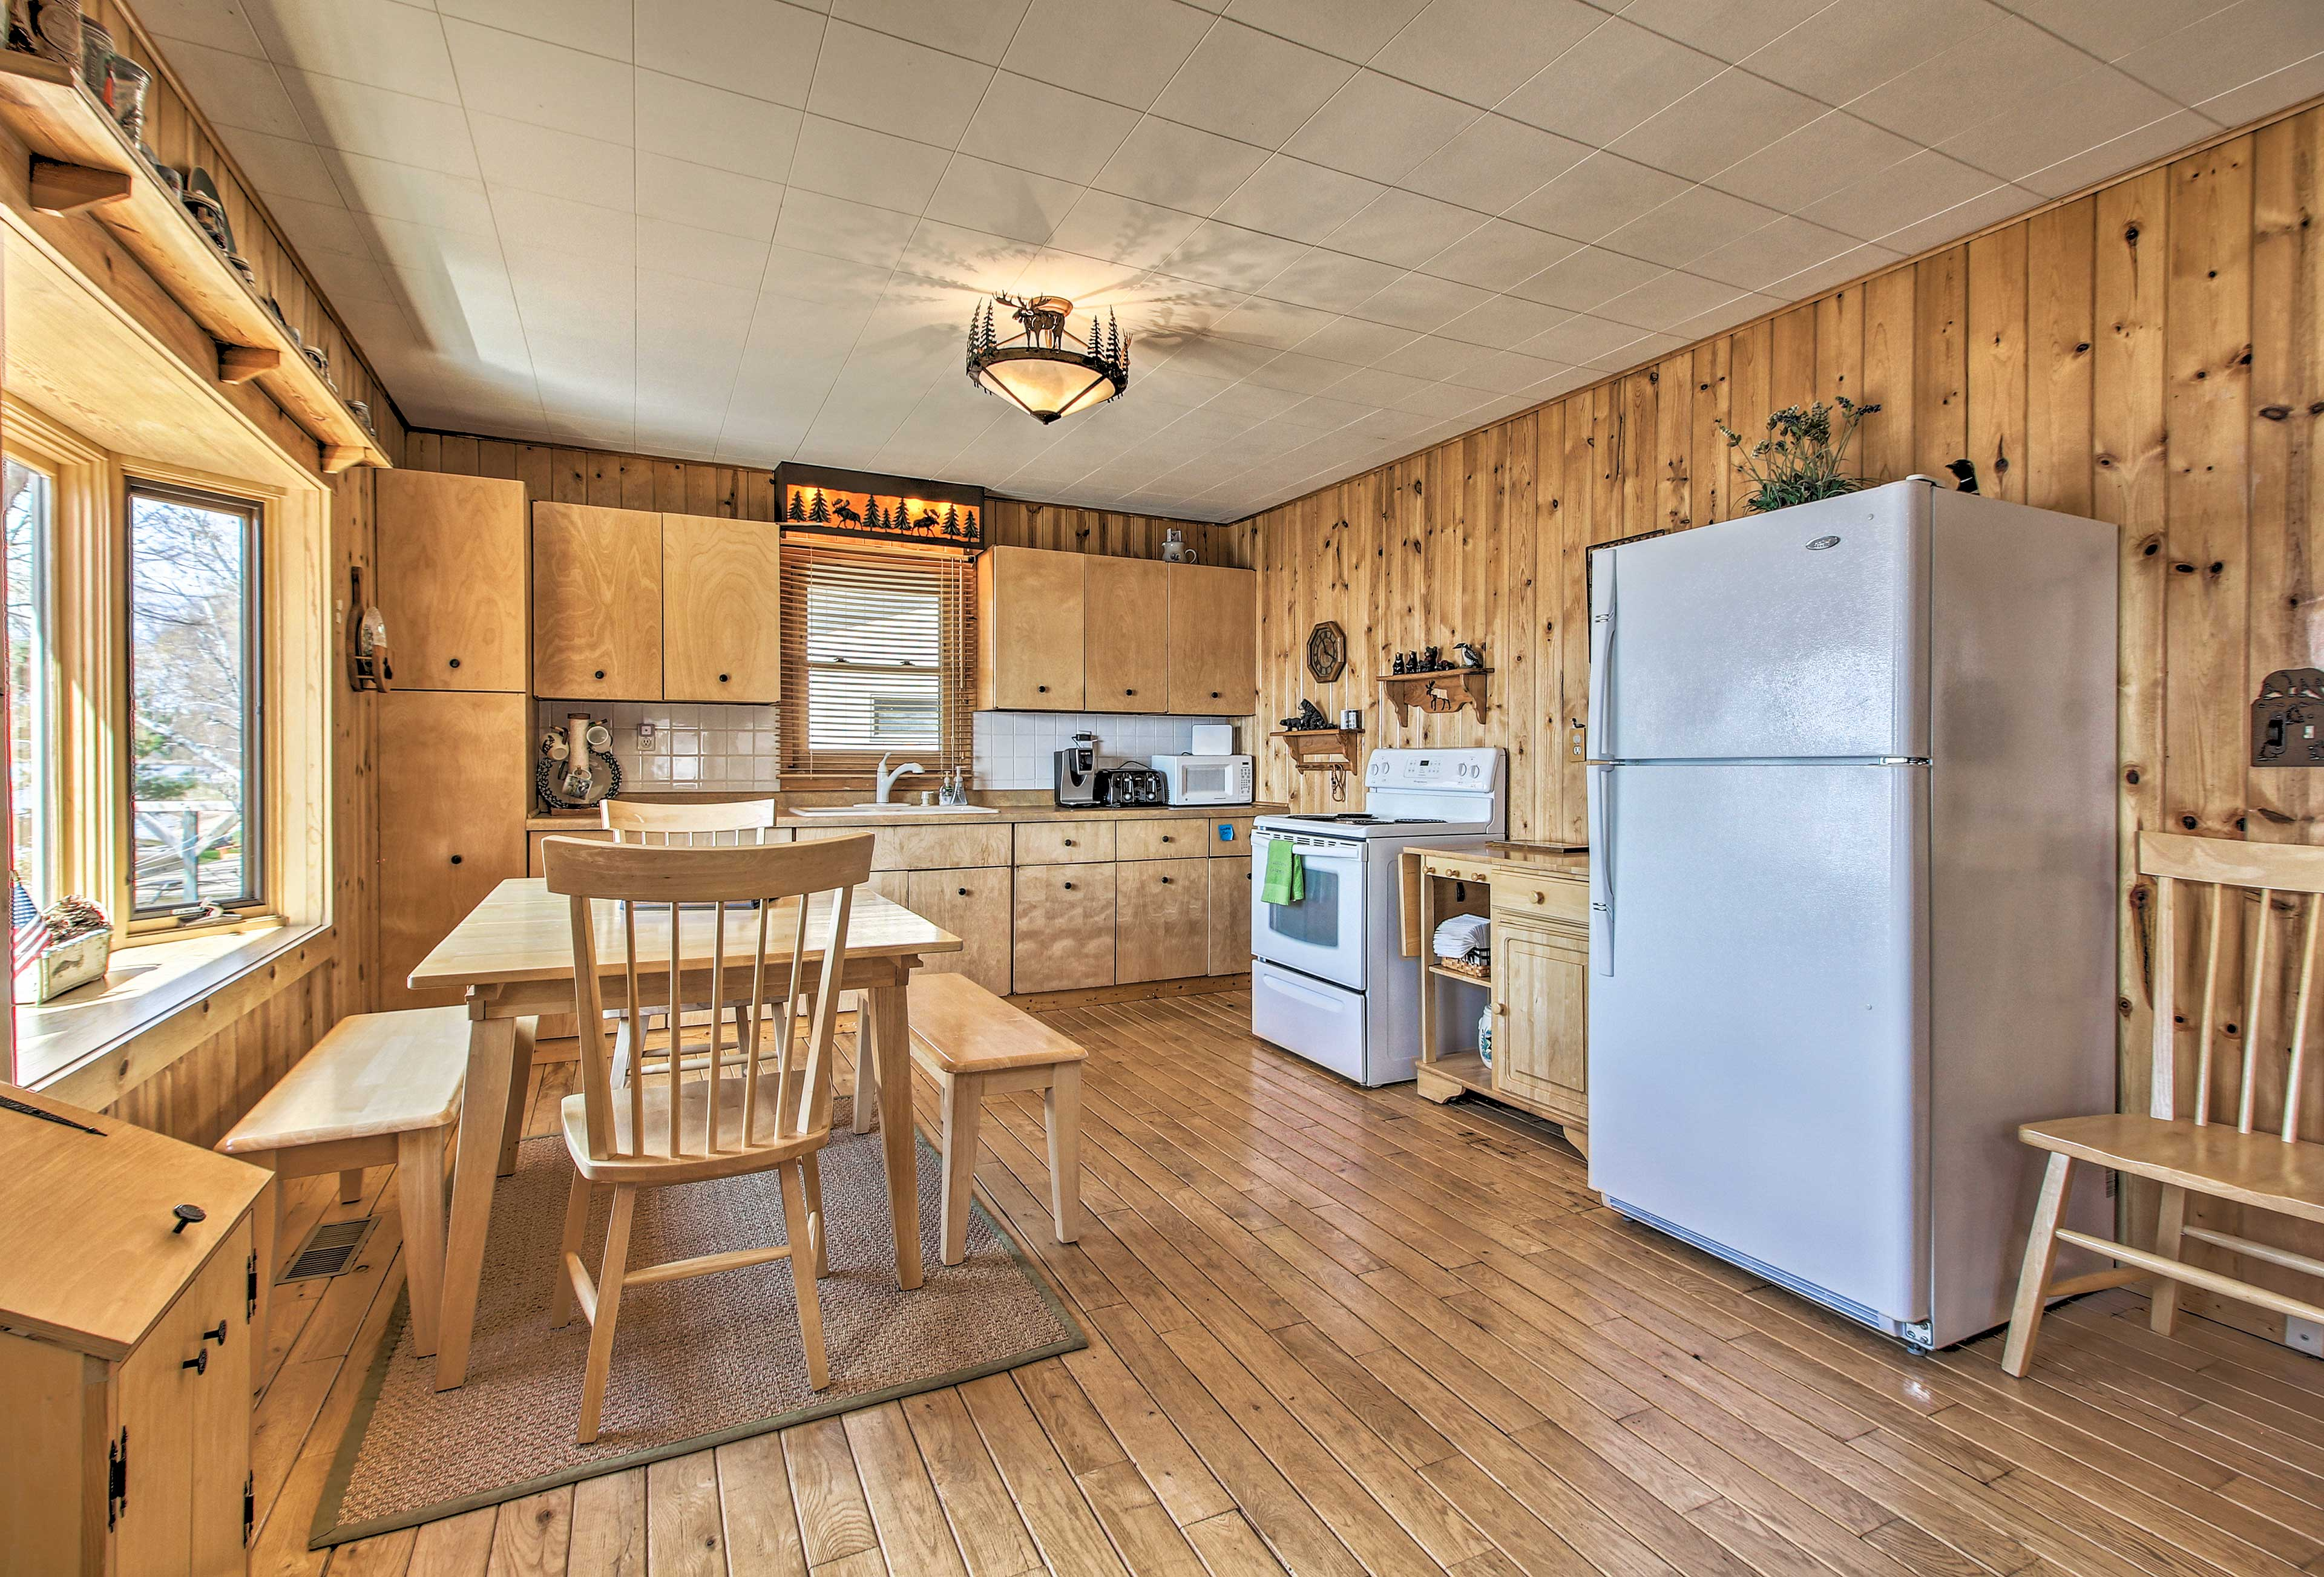 Prepare a hearty meal for the group in the fully equipped kitchen.